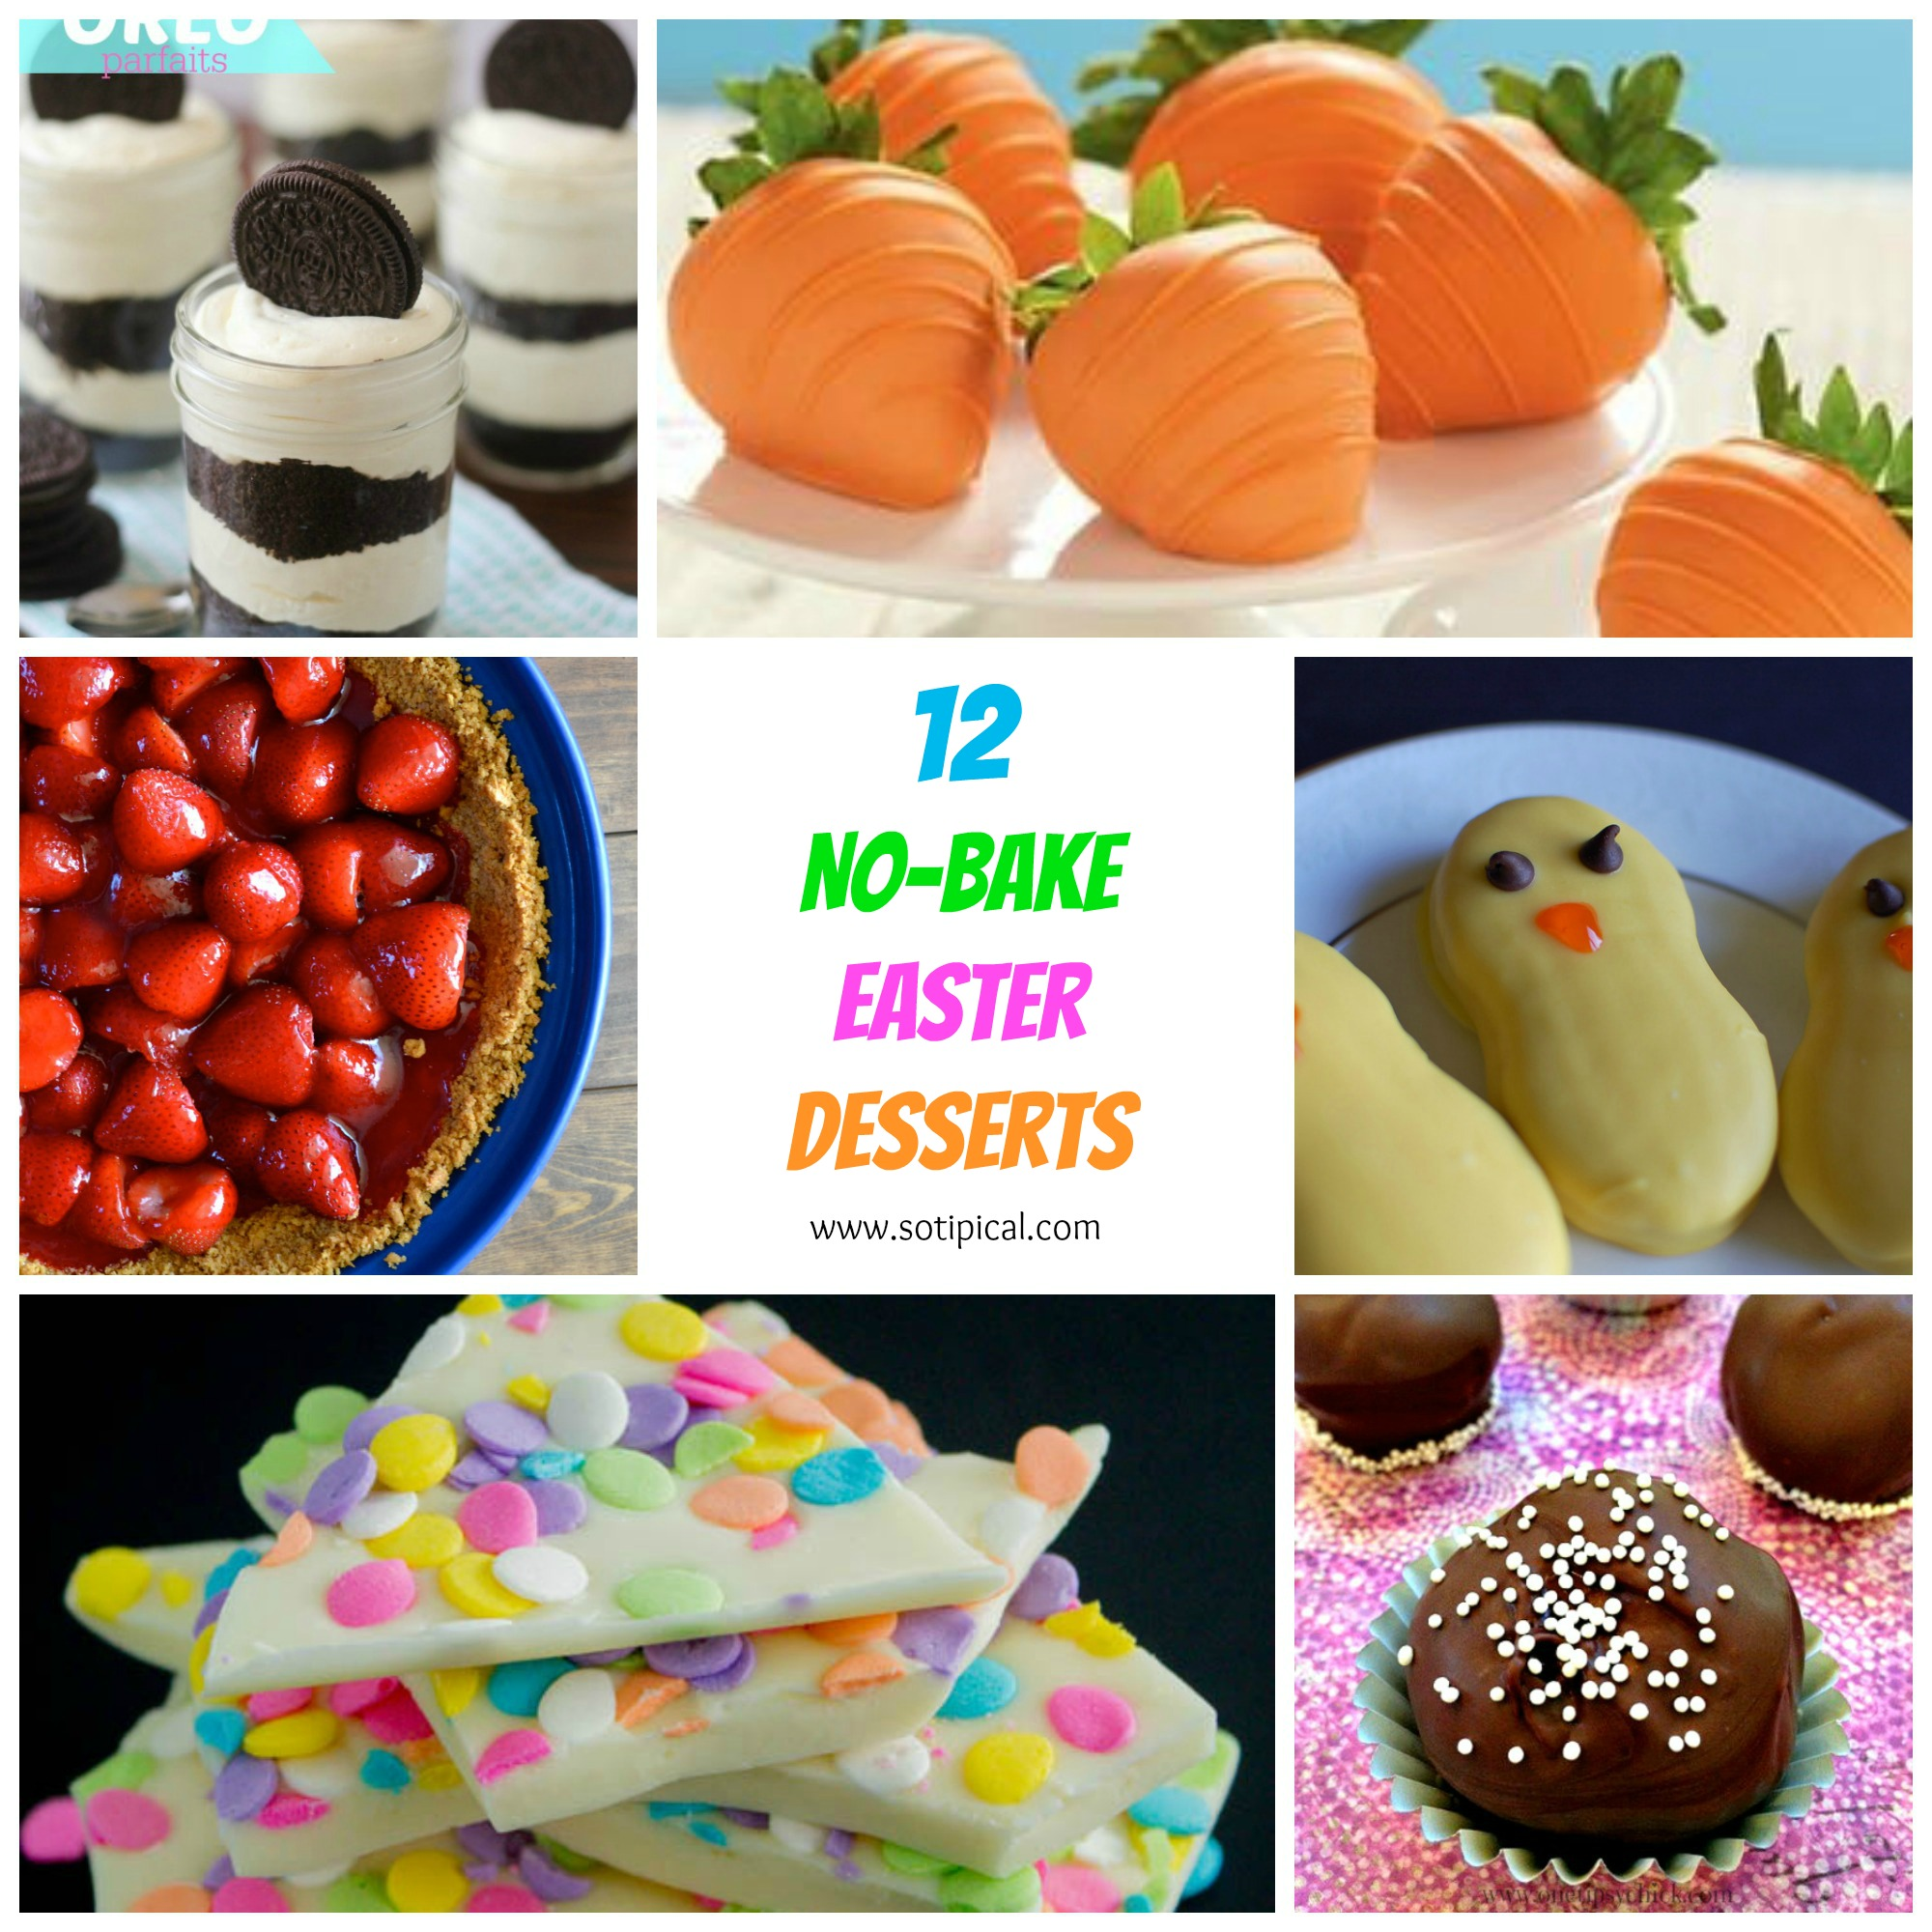 12 no bake easter desserts for Good desserts for easter